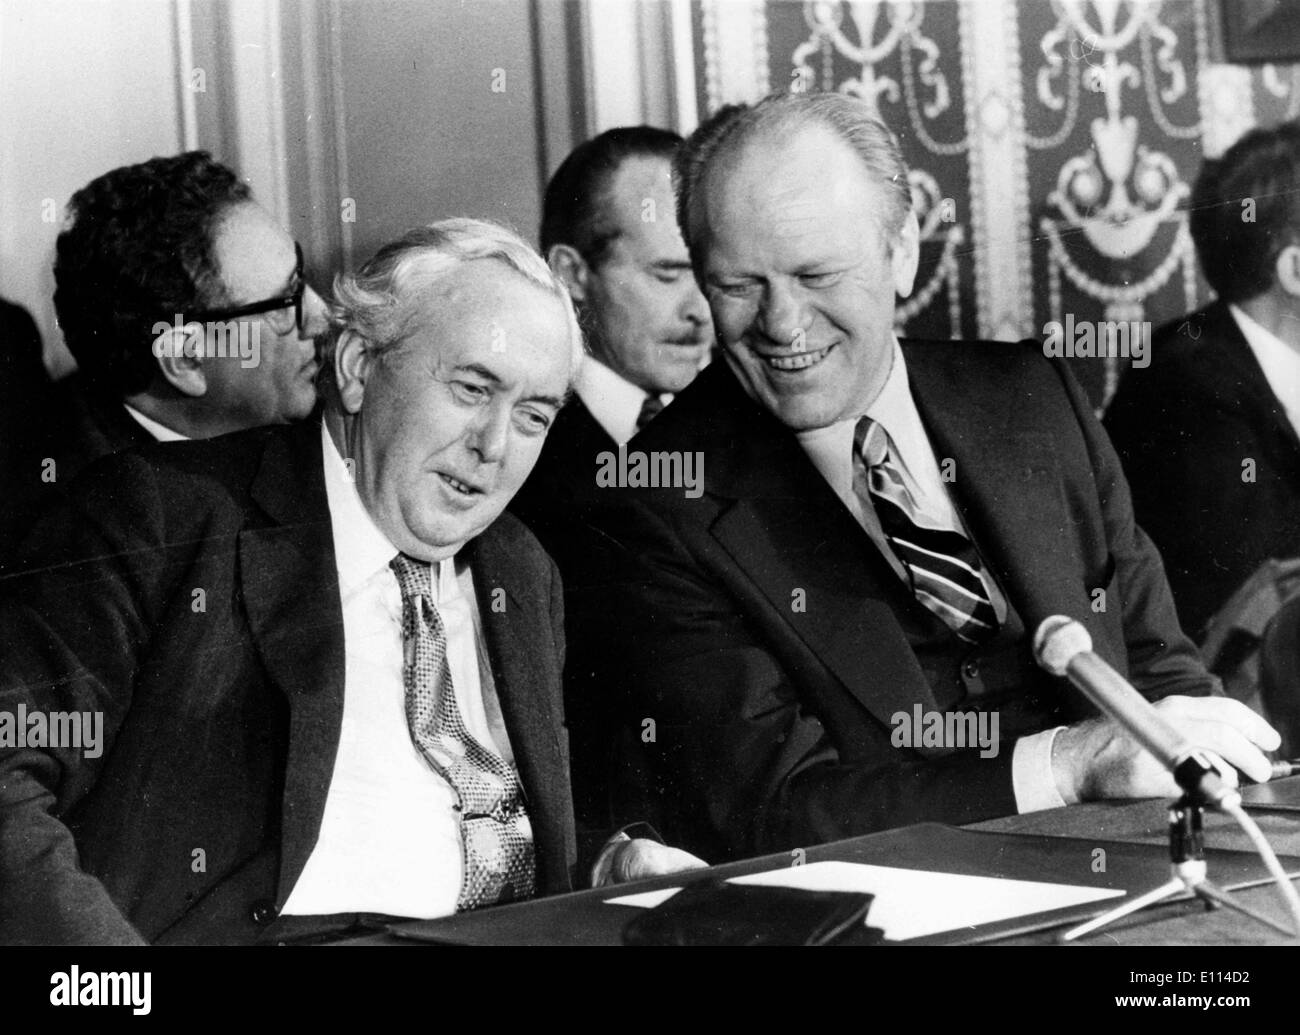 Nov 08, 1975; Rambouillet, France; The six major industrial countries, Britain, France, Germany, The United States, Japan and Italy ended theri three day summit at Rambouillet, near Paris. The picture shows Mr. HAROLD WILSON, the Bristish Prime Minister and President GERALD FORD during the conference. (Credit Image: KEYSTONE Pictures USA/ZUMAPRESS.com) - Stock Image